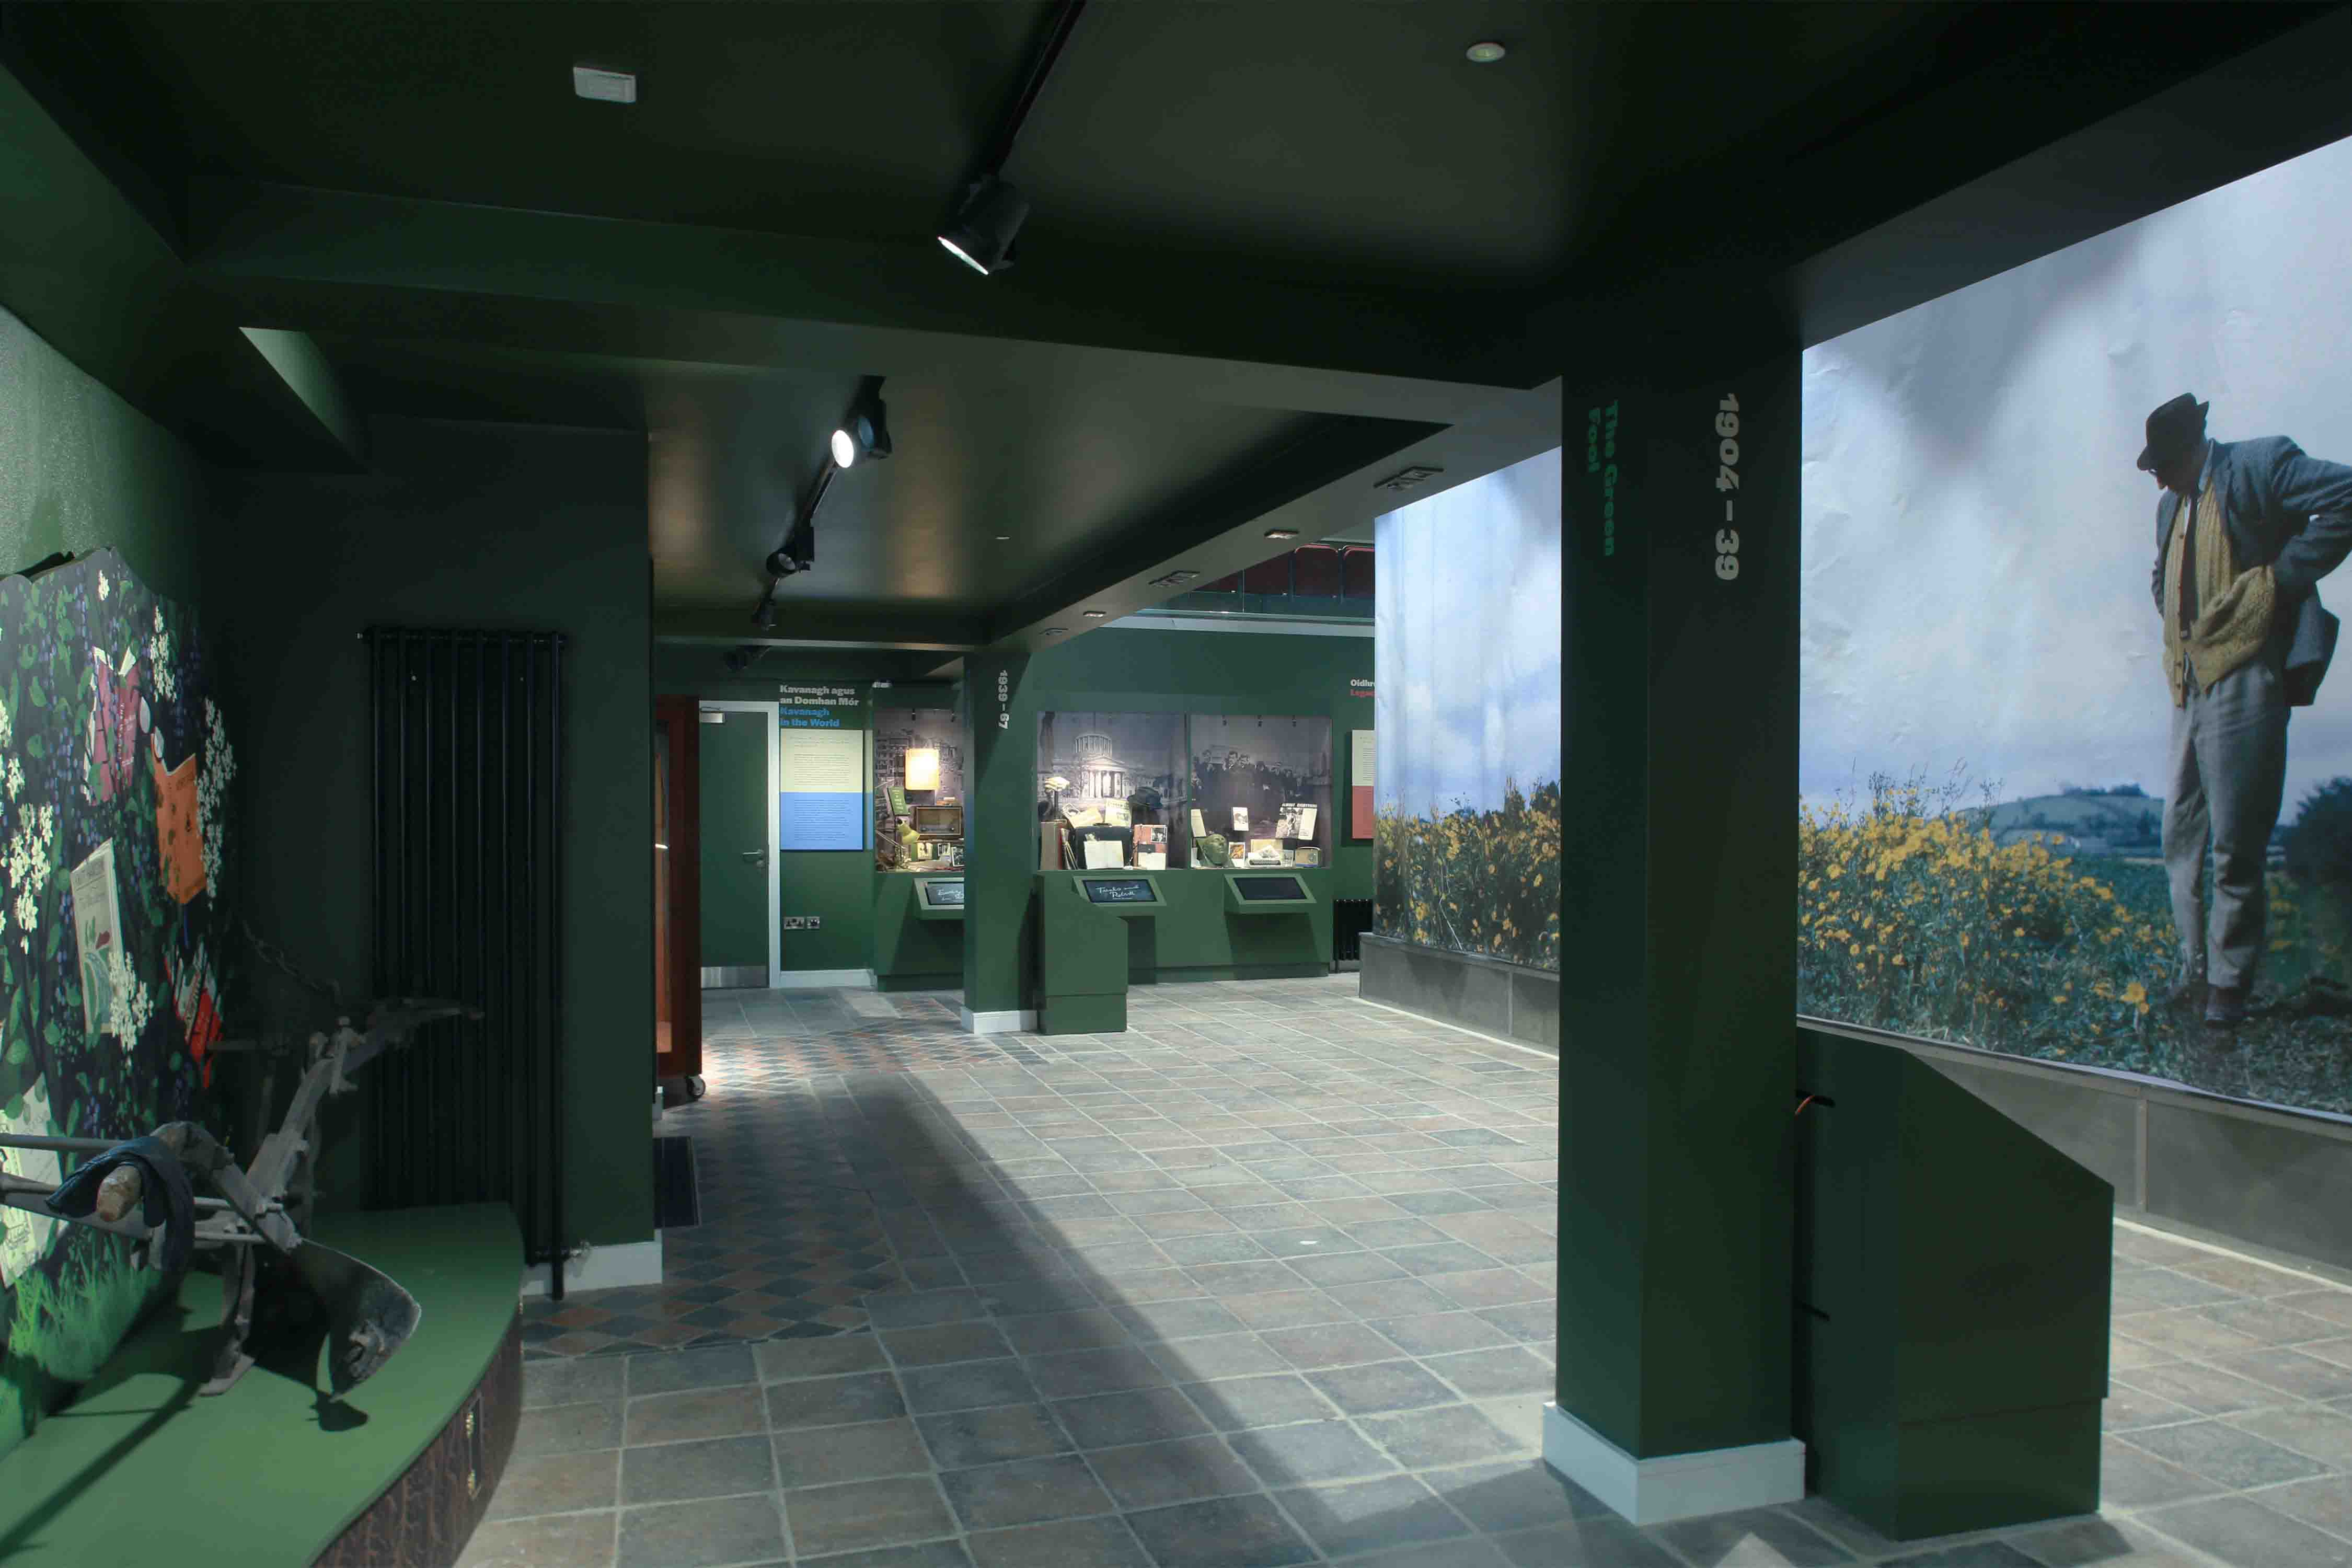 Patrick Kavanagh Exhibition Centre (3)